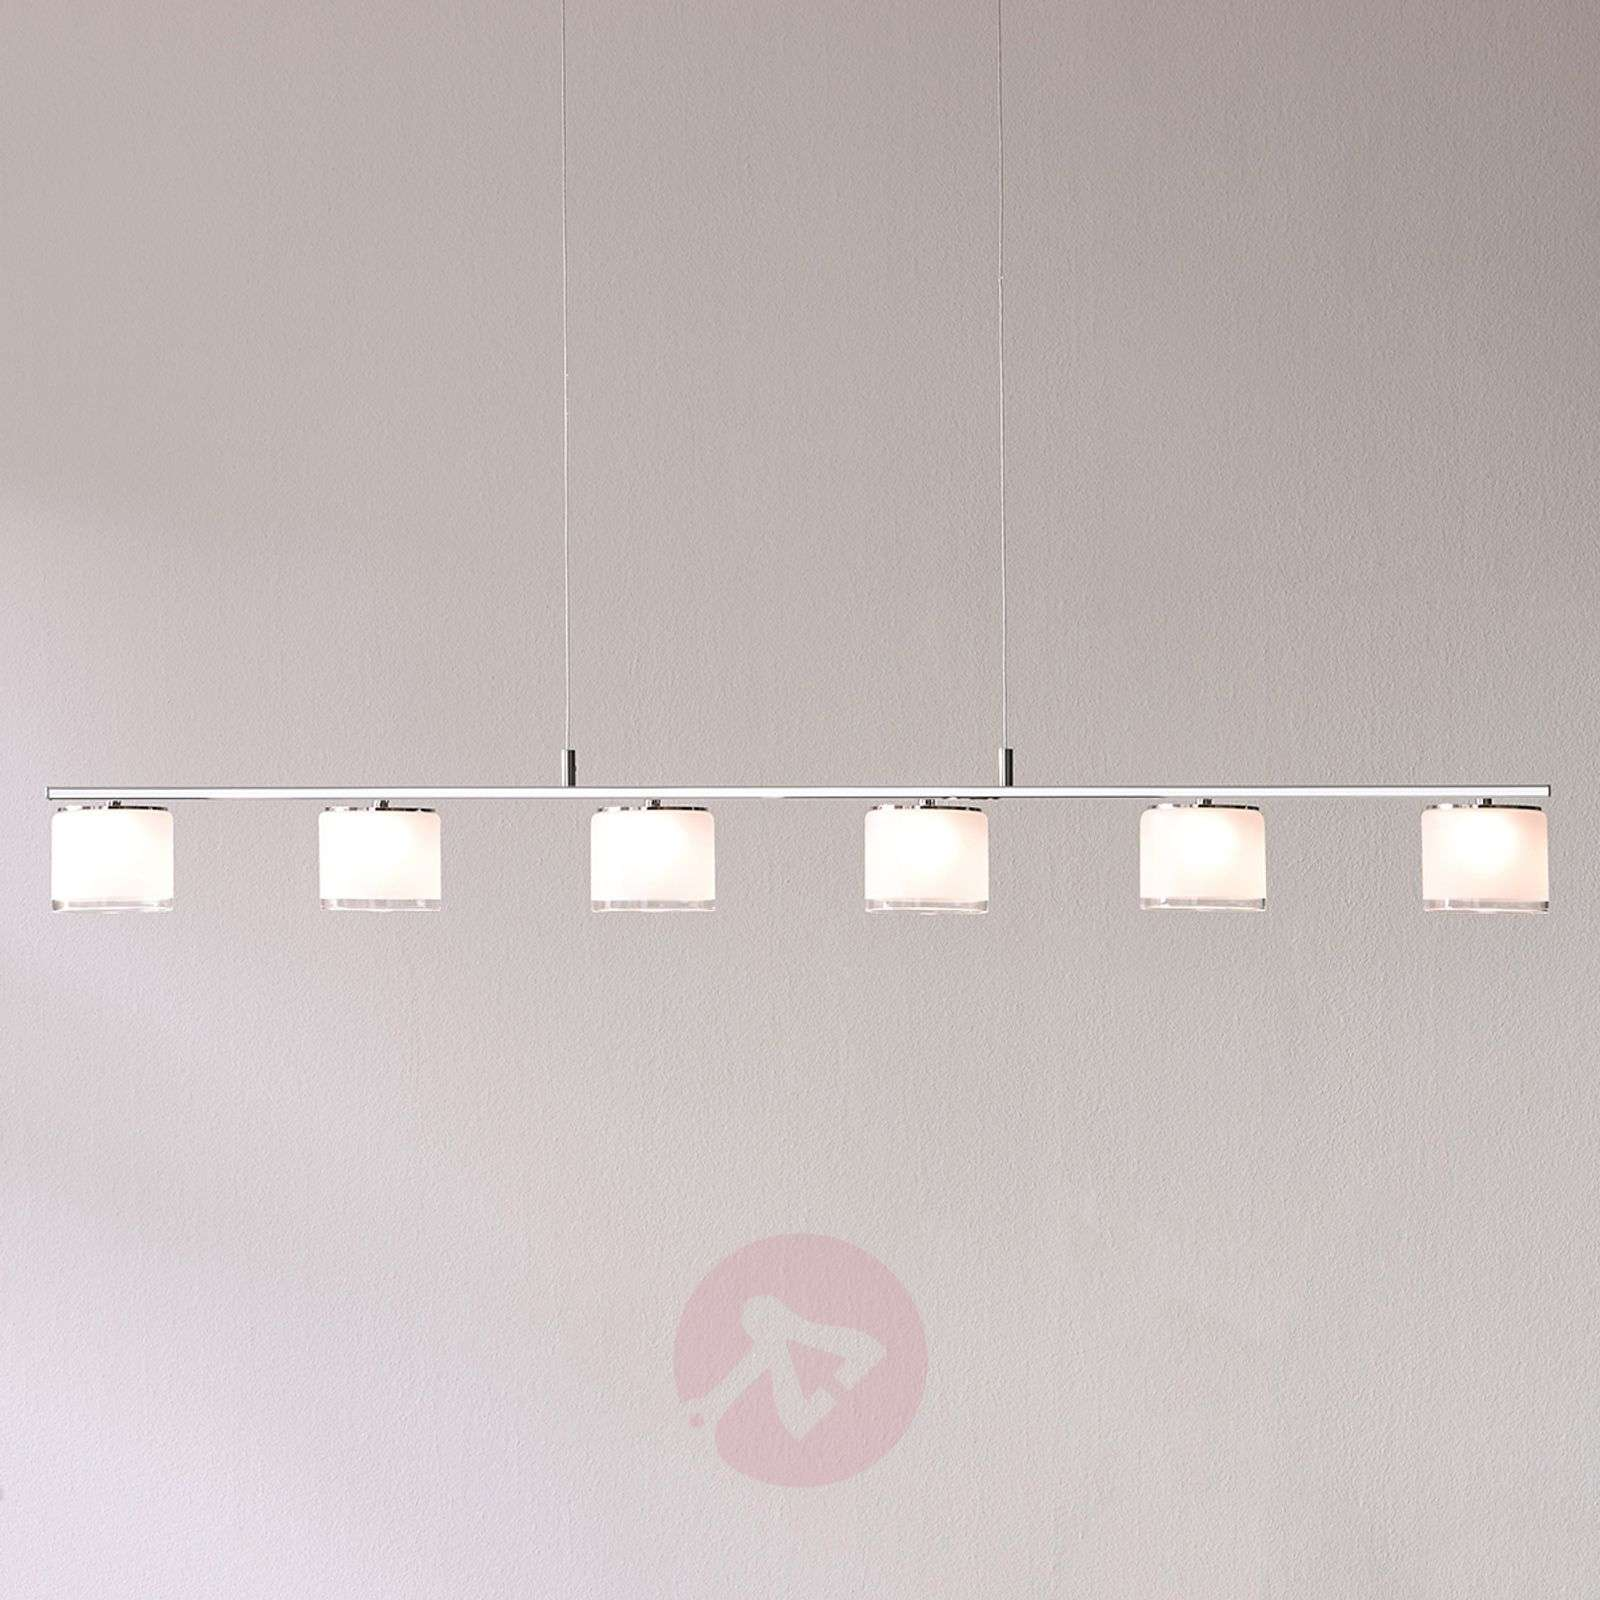 Philips Byzantin trave a sospensione a LED, cromo-7531852-011